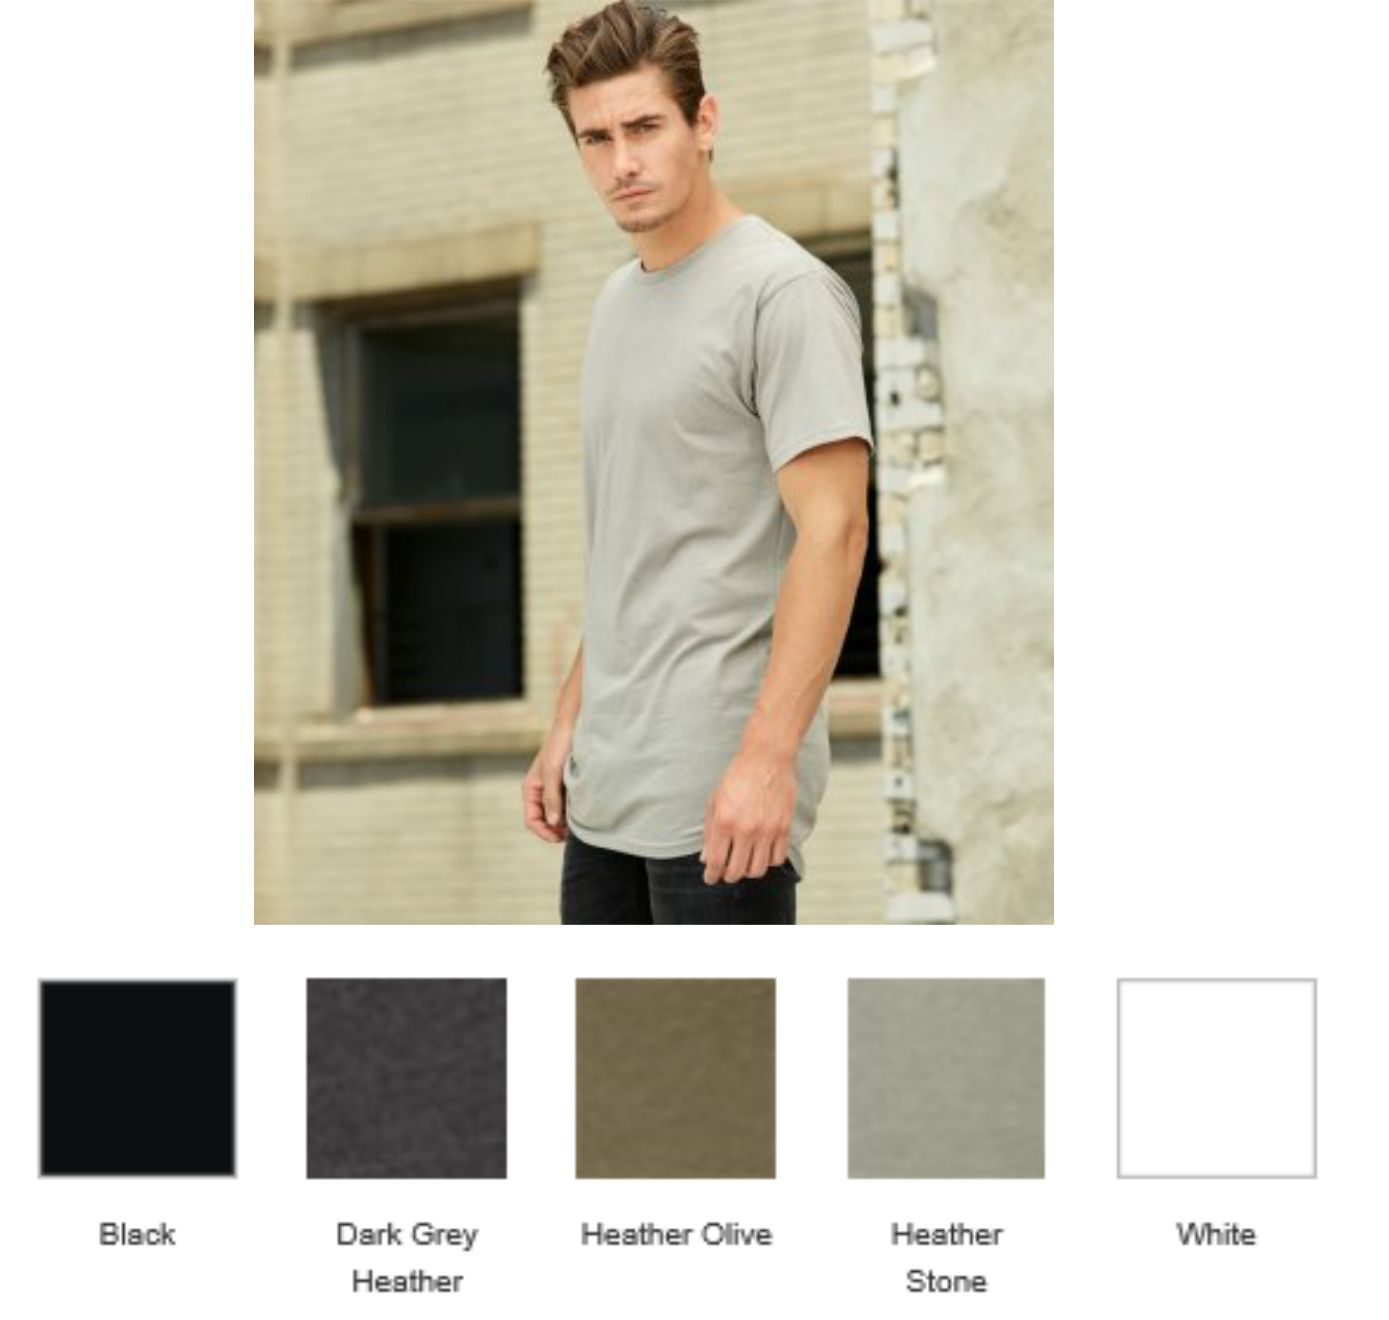 CV3006 Bella+Canvas Long Body Urban Tee Shirt